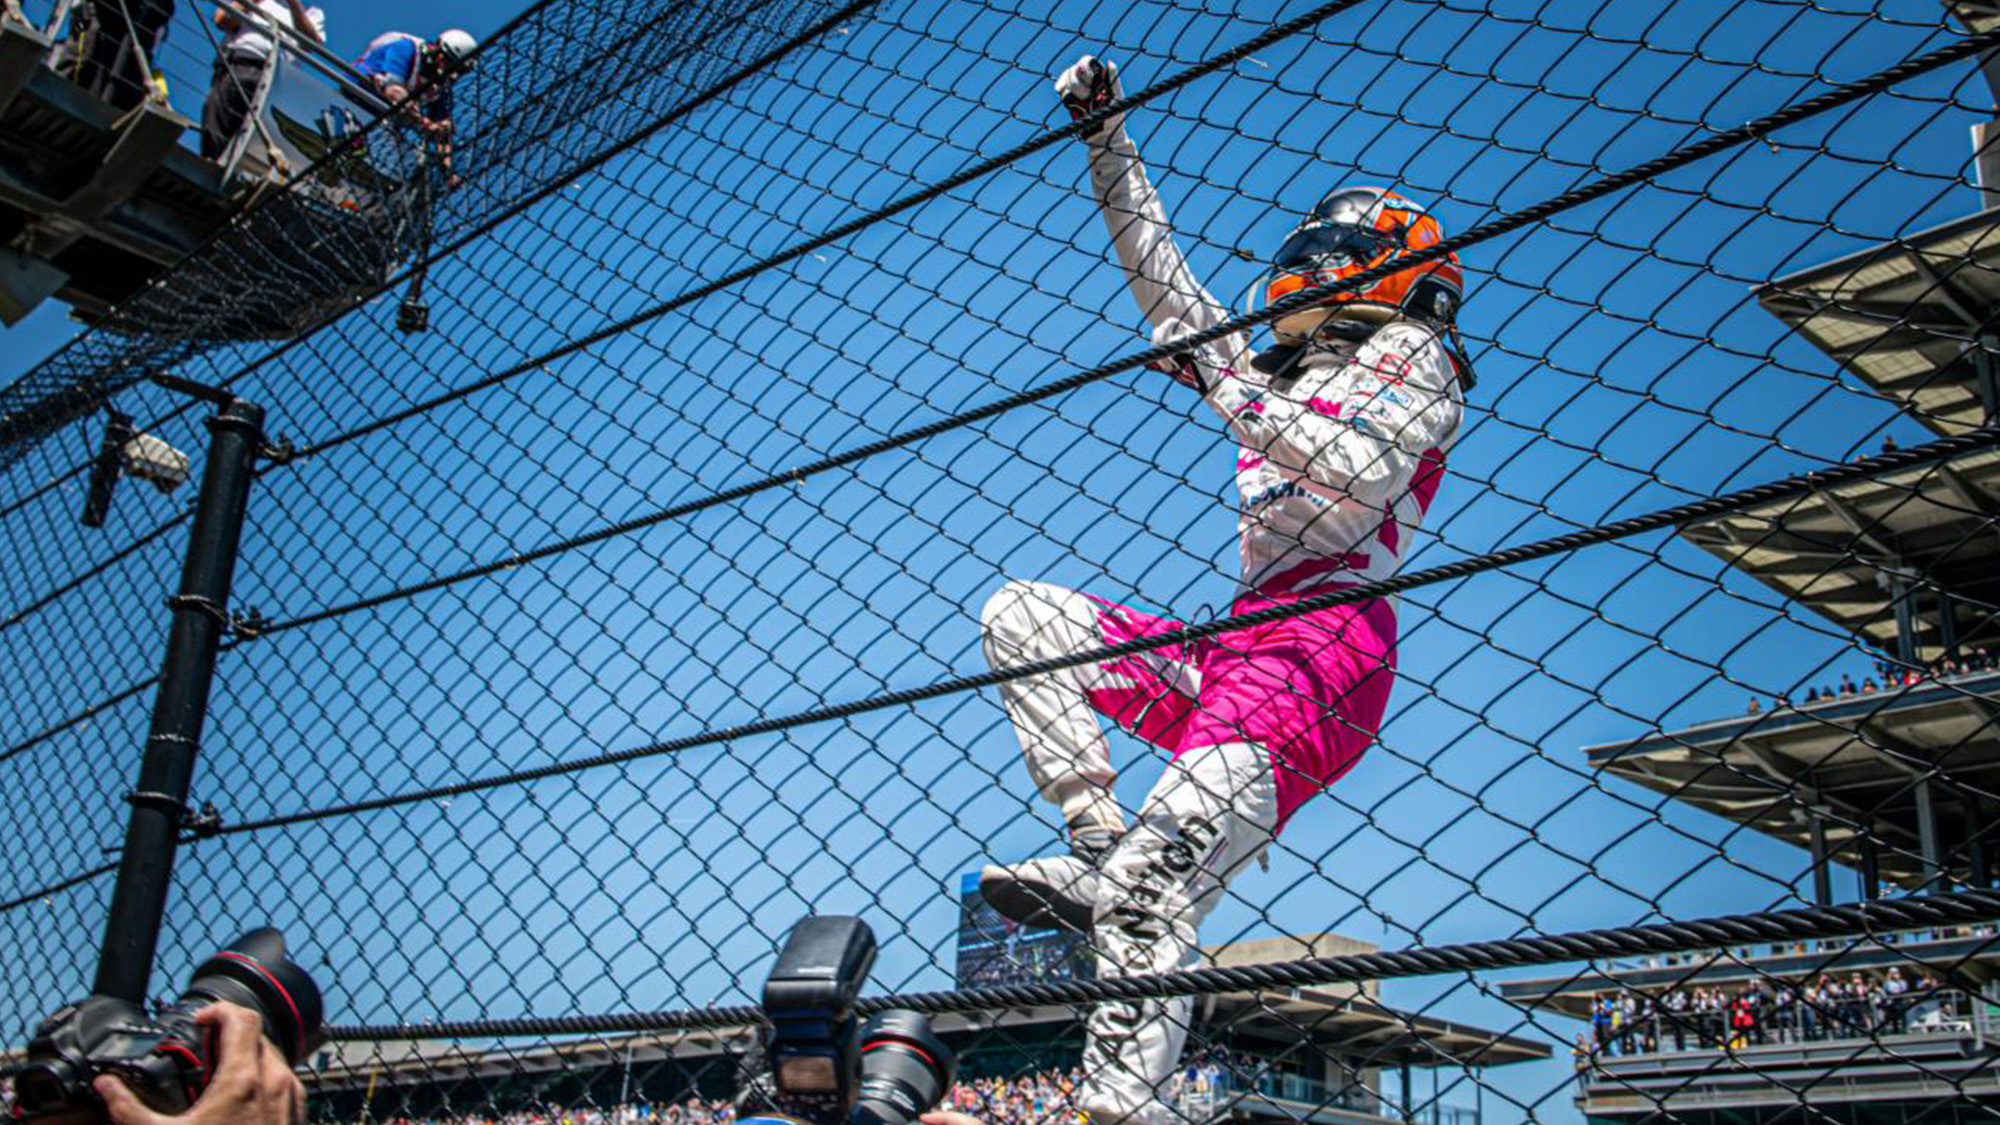 Helio Castroneves climbs the fence after winning the 2021 Indy 500